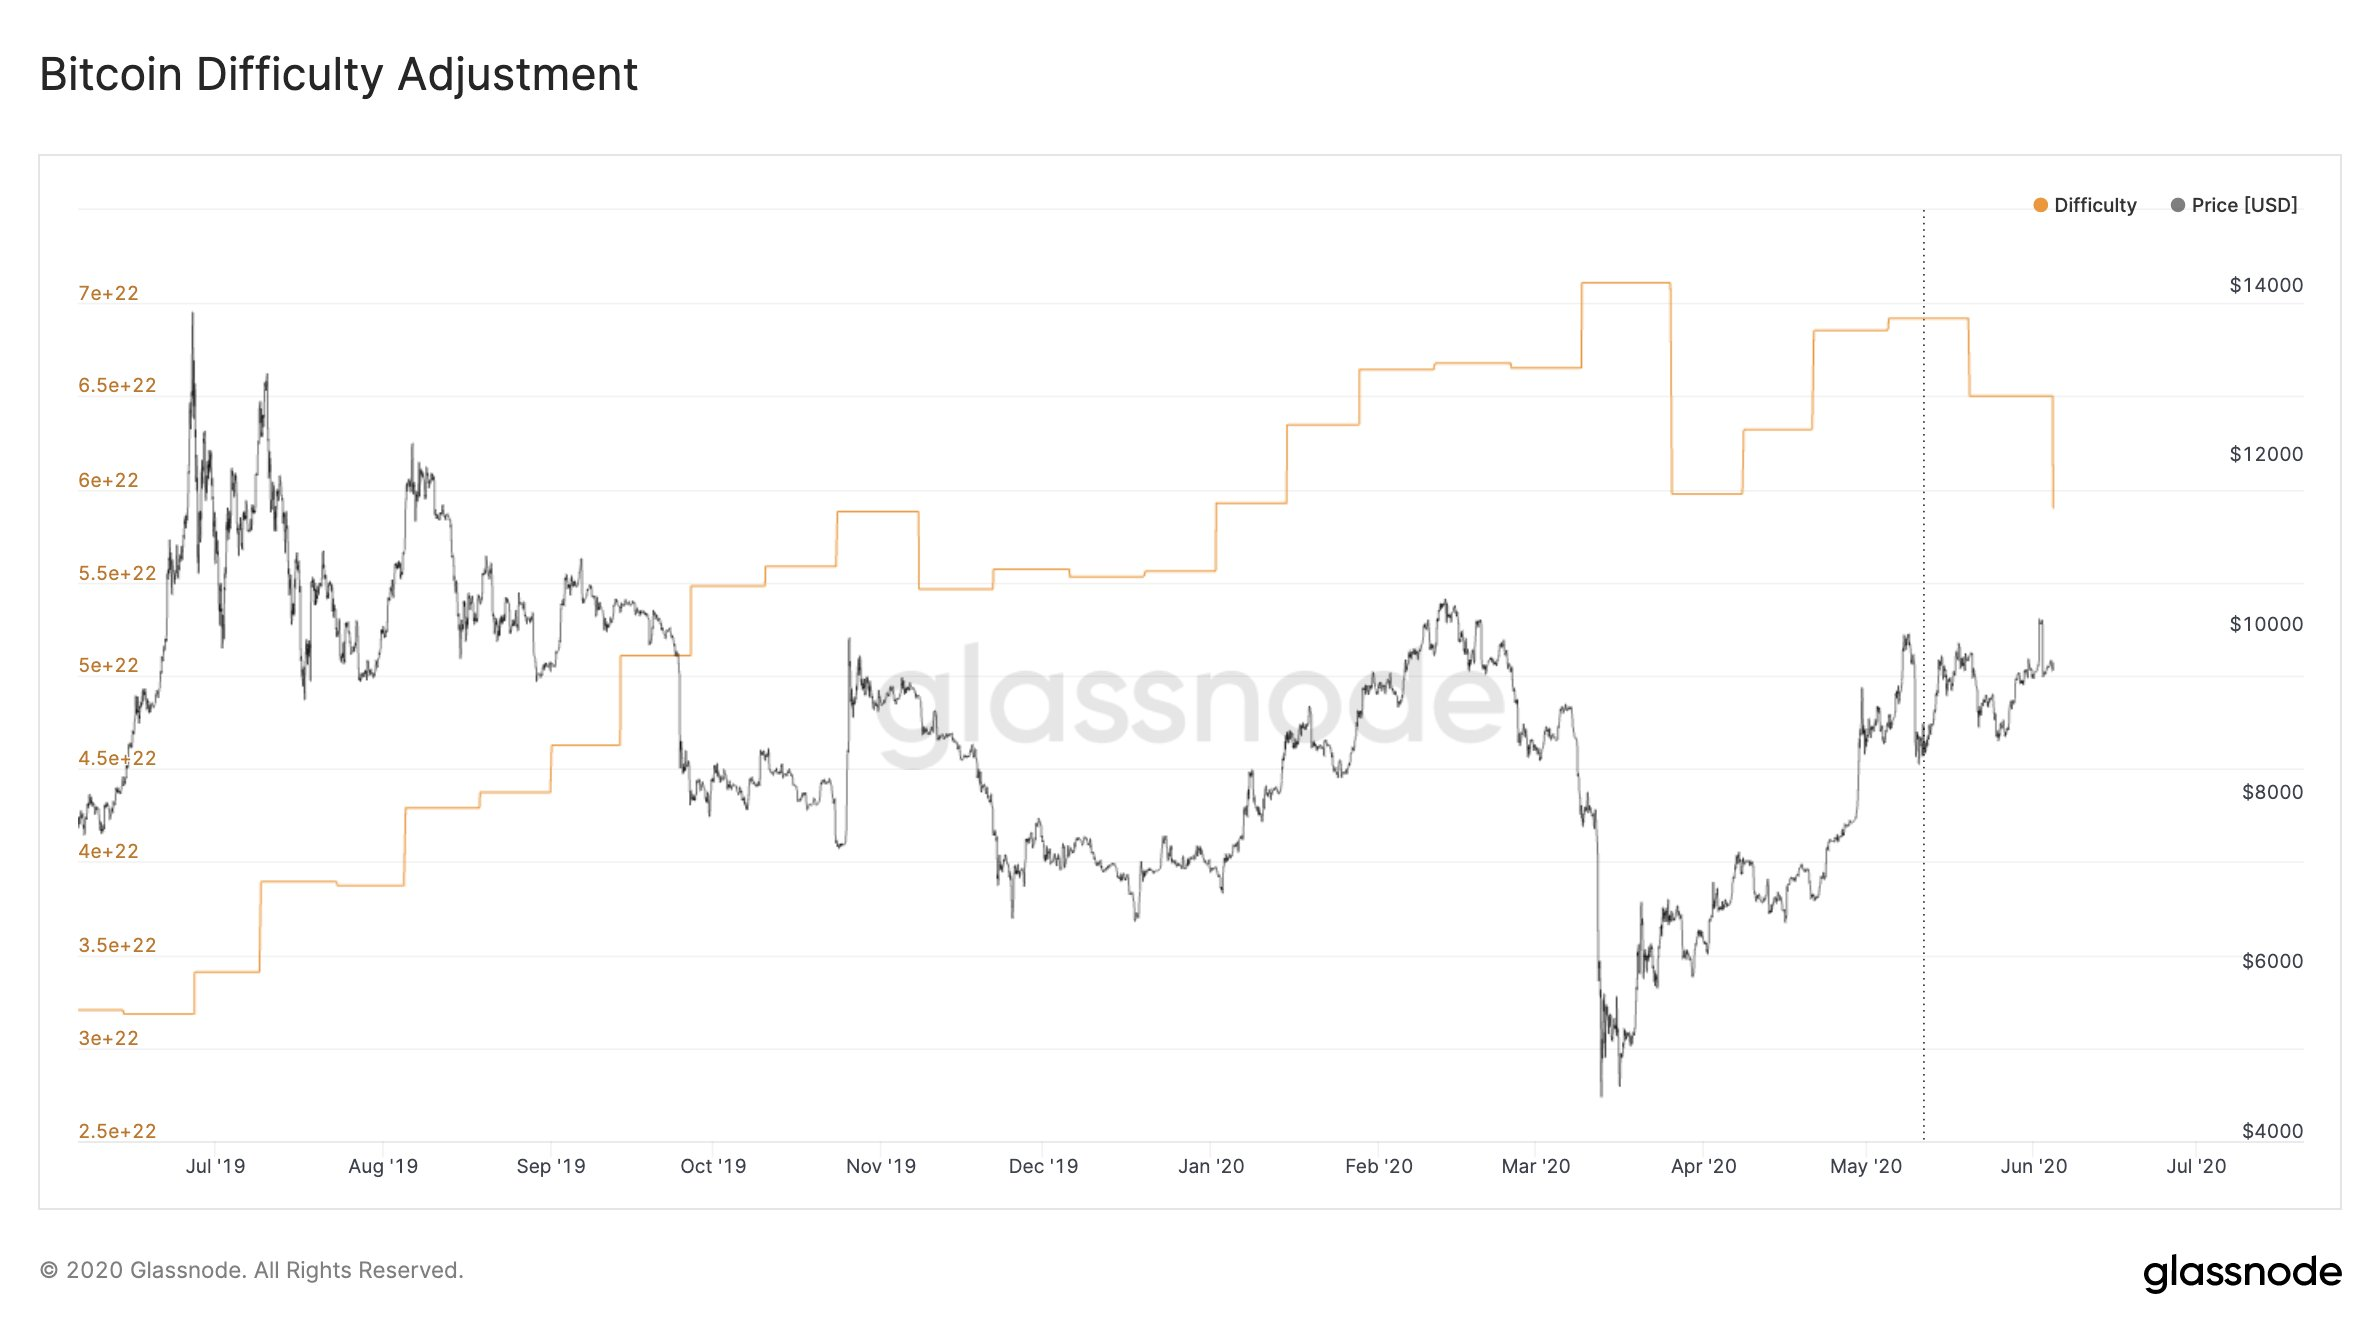 Bitcoin Difficulty Adjustment